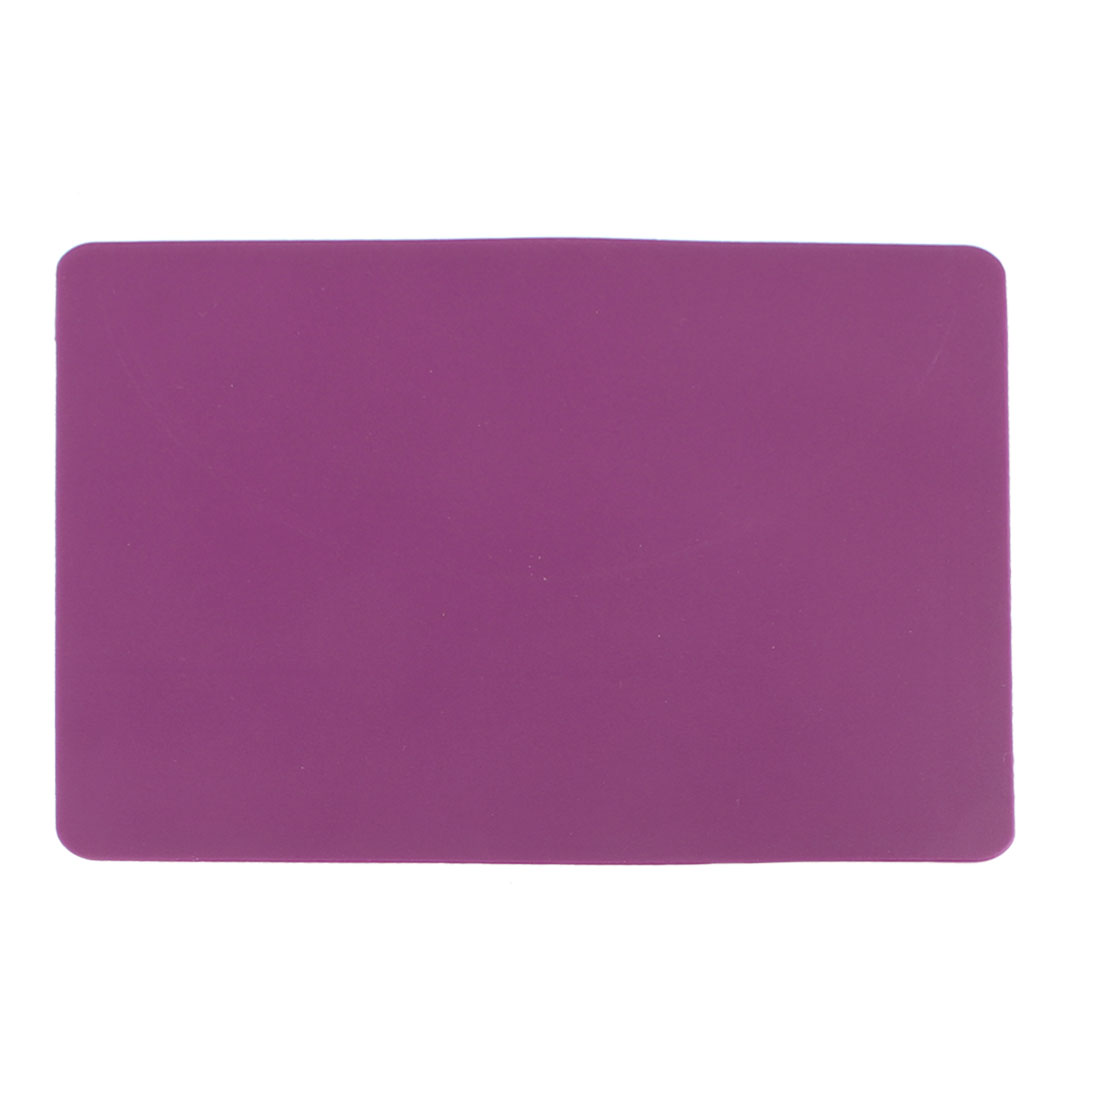 23cm x 19cm Silicone Anti-slip Purple Mouse Pad Mat for Laptop